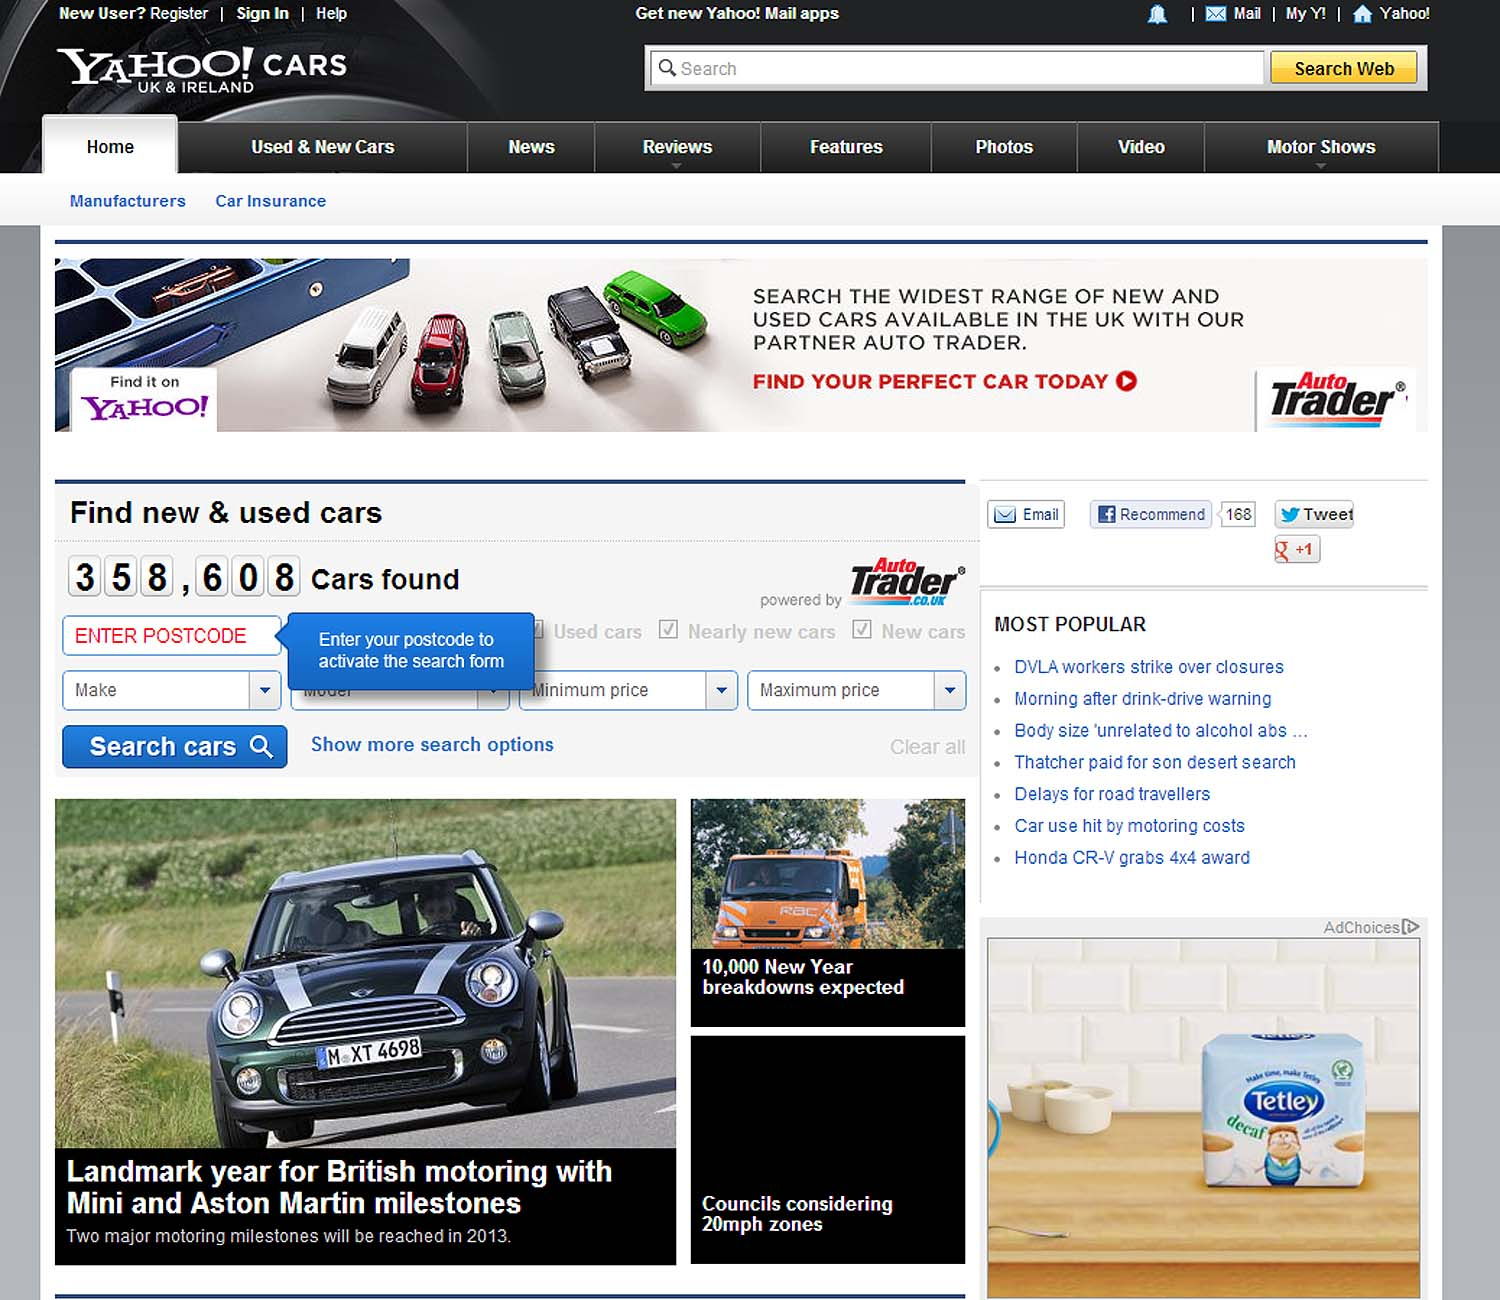 yahoo cars screen Yahoo Cars UK & Ireland partners with Auto Trader to expand its network of second hand motors